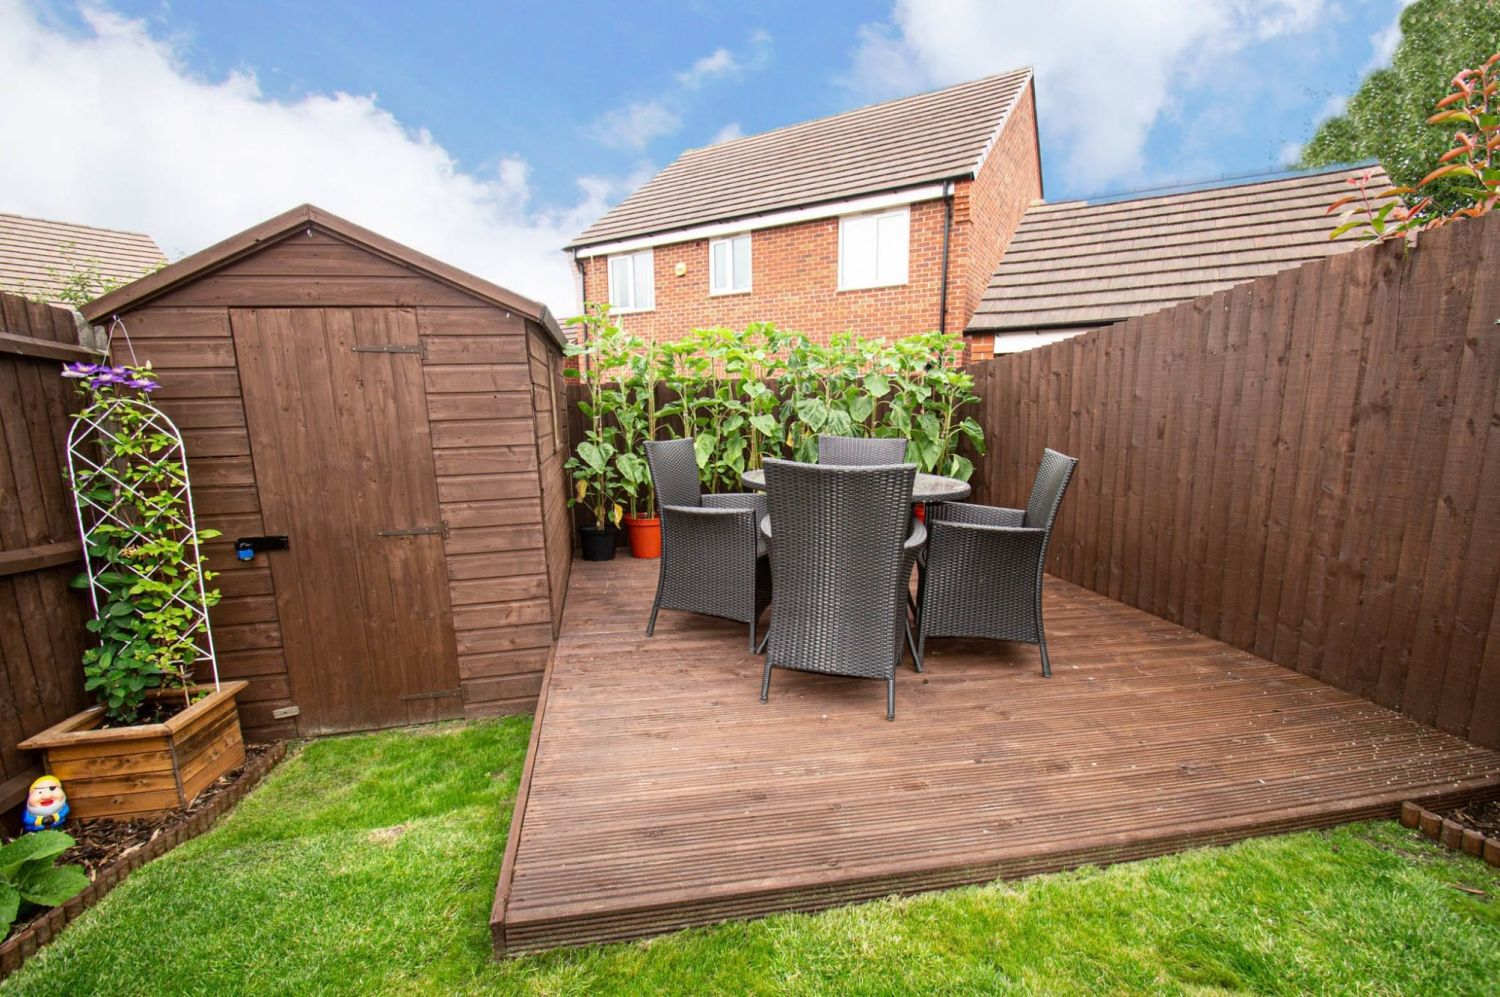 2 bed semi-detached for sale in Bobeche Place, Kingswinford 11